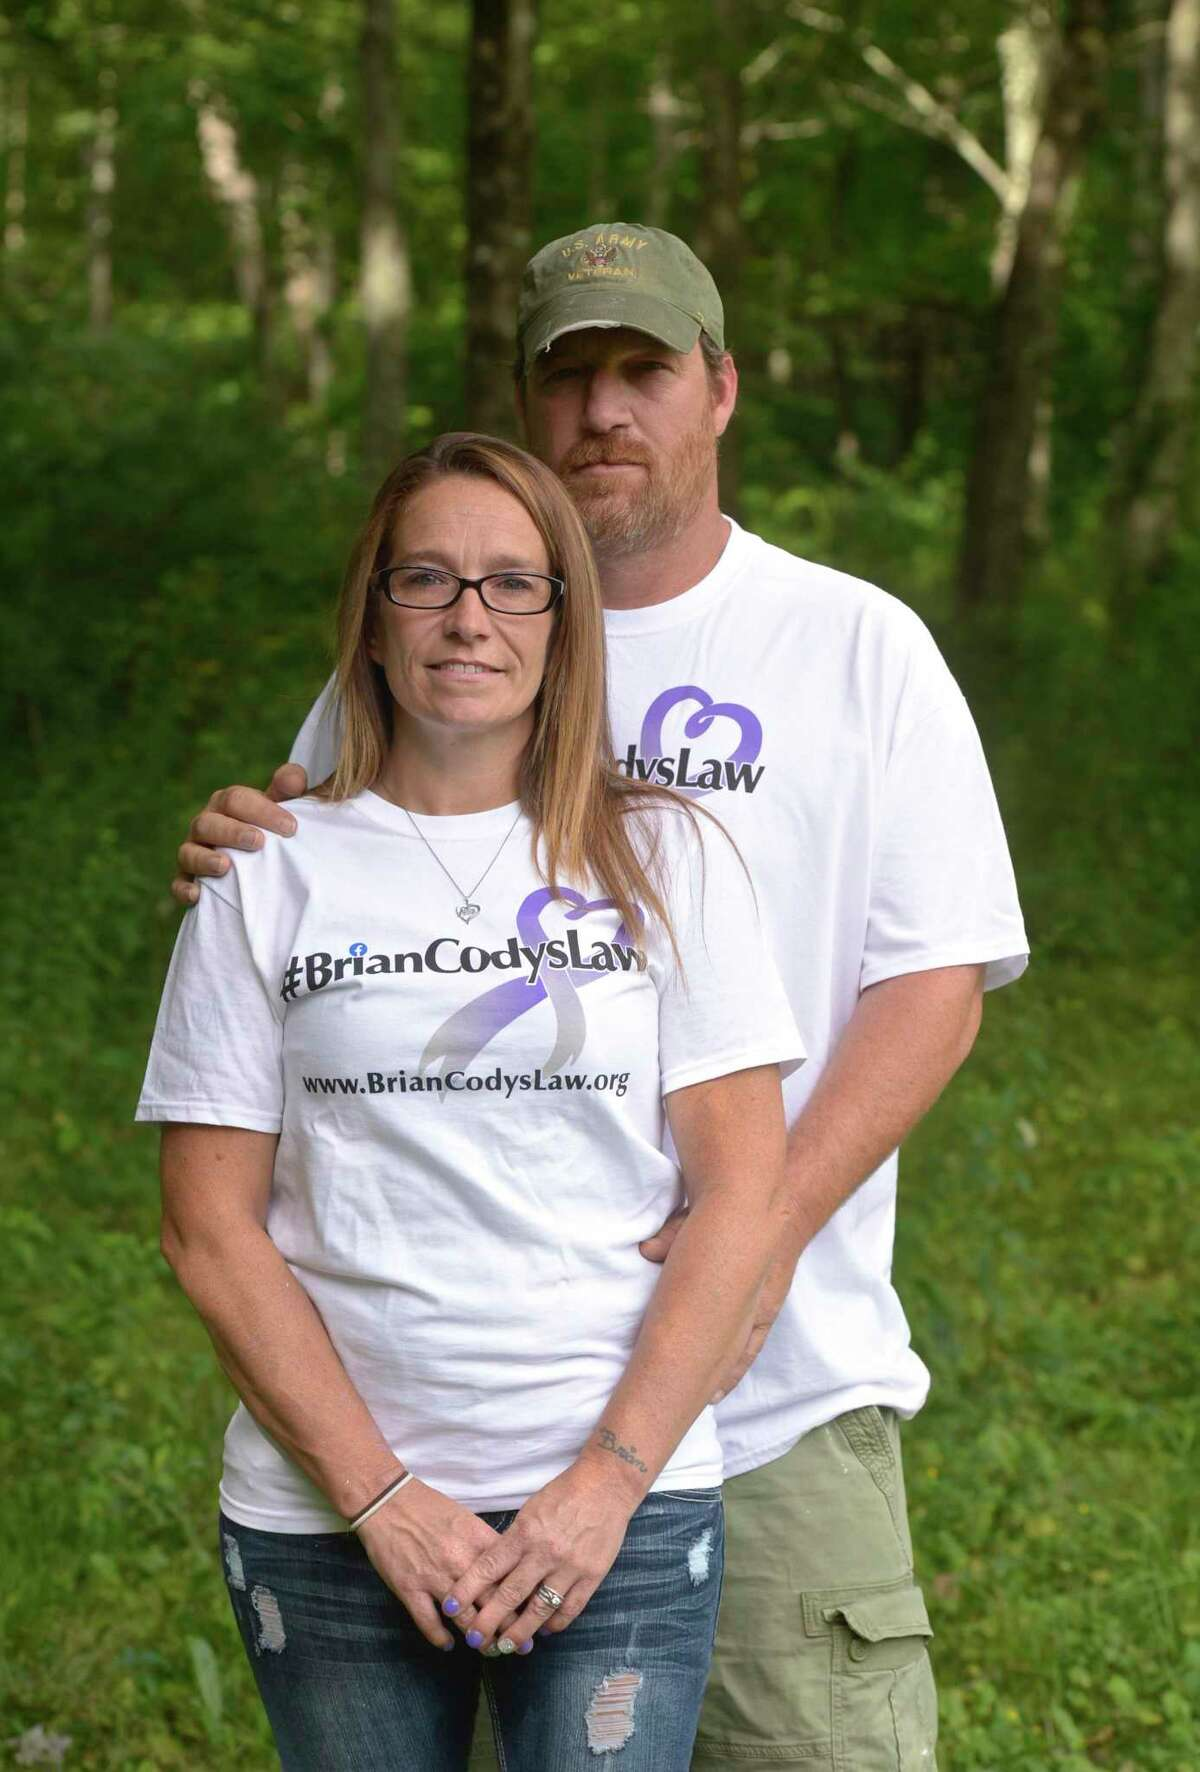 The parents of Brian Cody, Tracey and Tony Morrissey, marked the one year anniversary of Brian's fatal overdose this past Monday. New Milford, Conn, Friday, August 14, 2020.